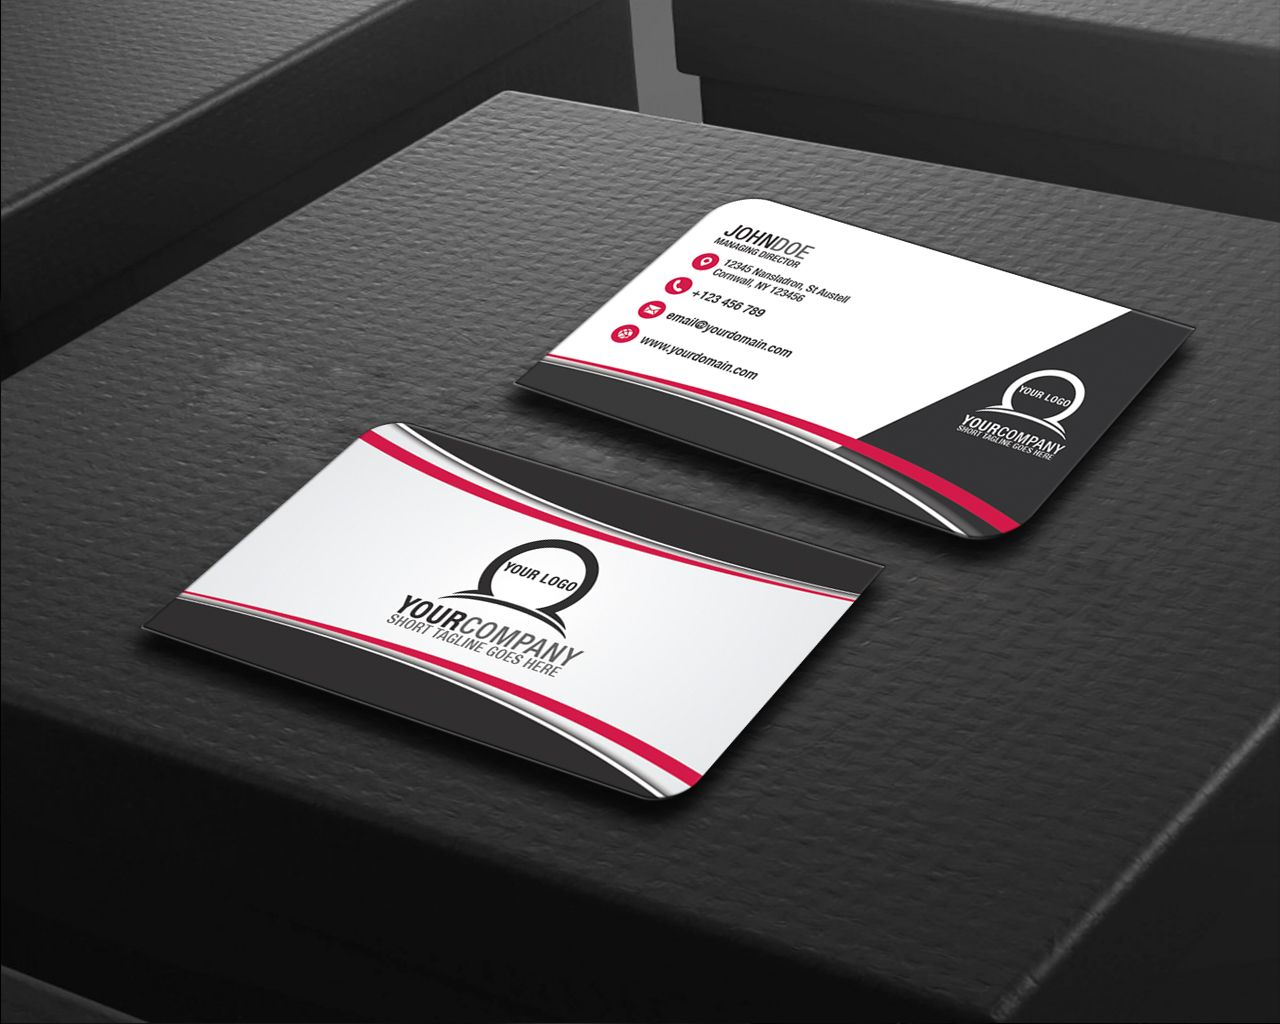 Simple Professional Business Card Design - Style 2 - Business Card ...